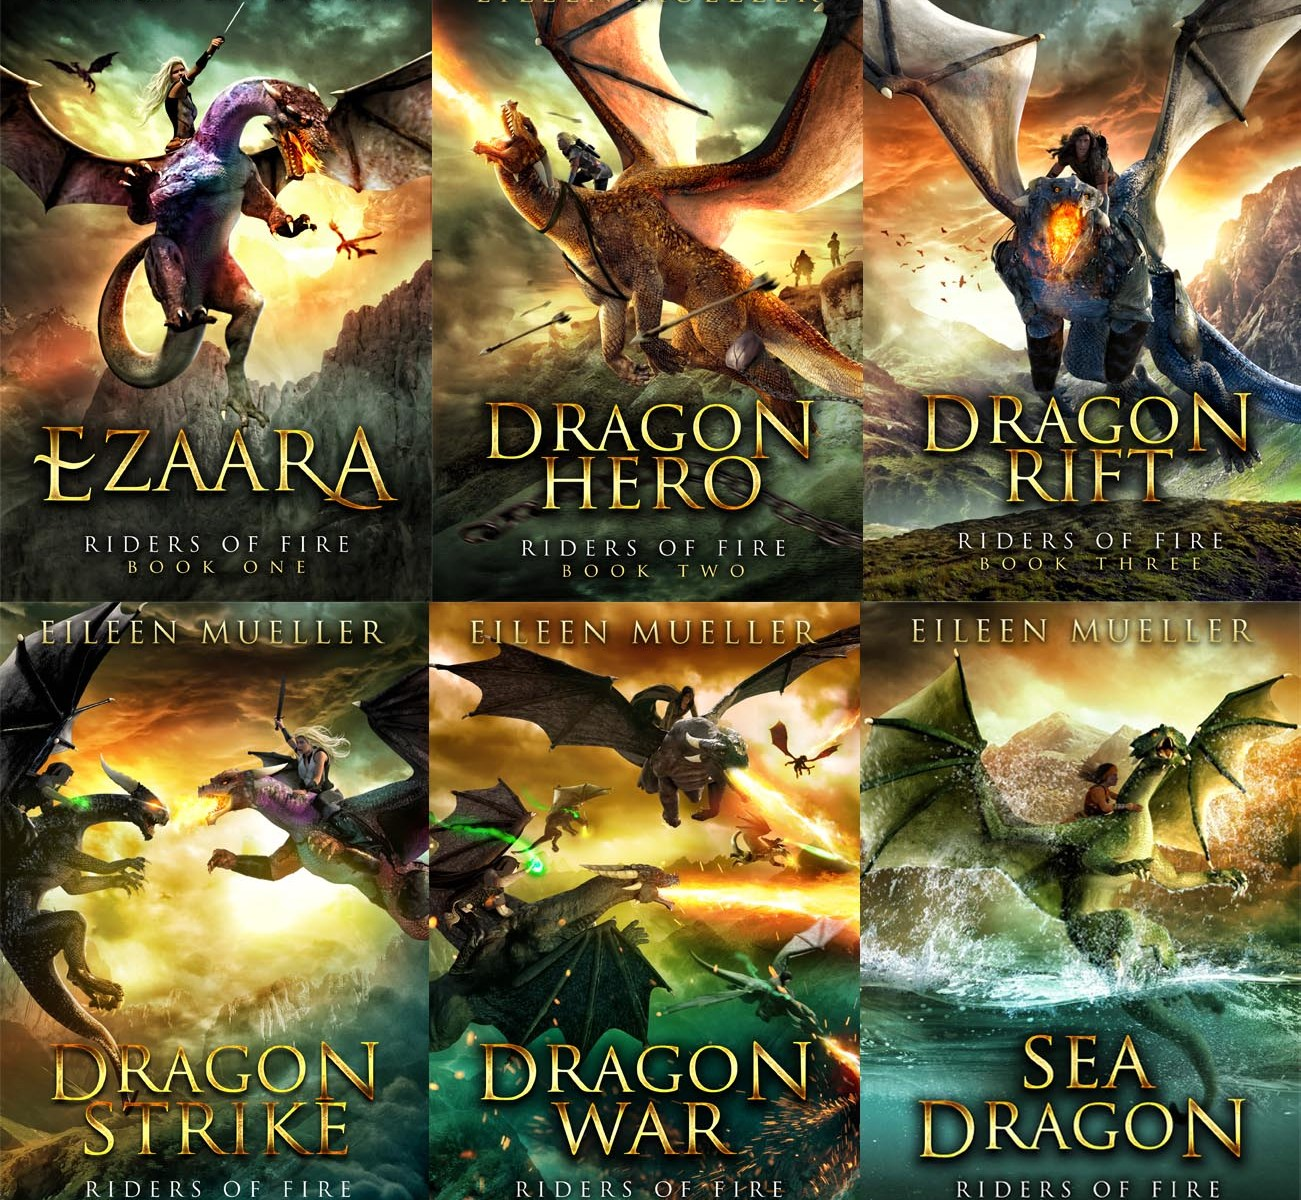 Riders of Fire Books 1-6: Ezaara, Dragon Hero, Dragon Rift, Dragon Strike, Dragon War and Sea Dragon.